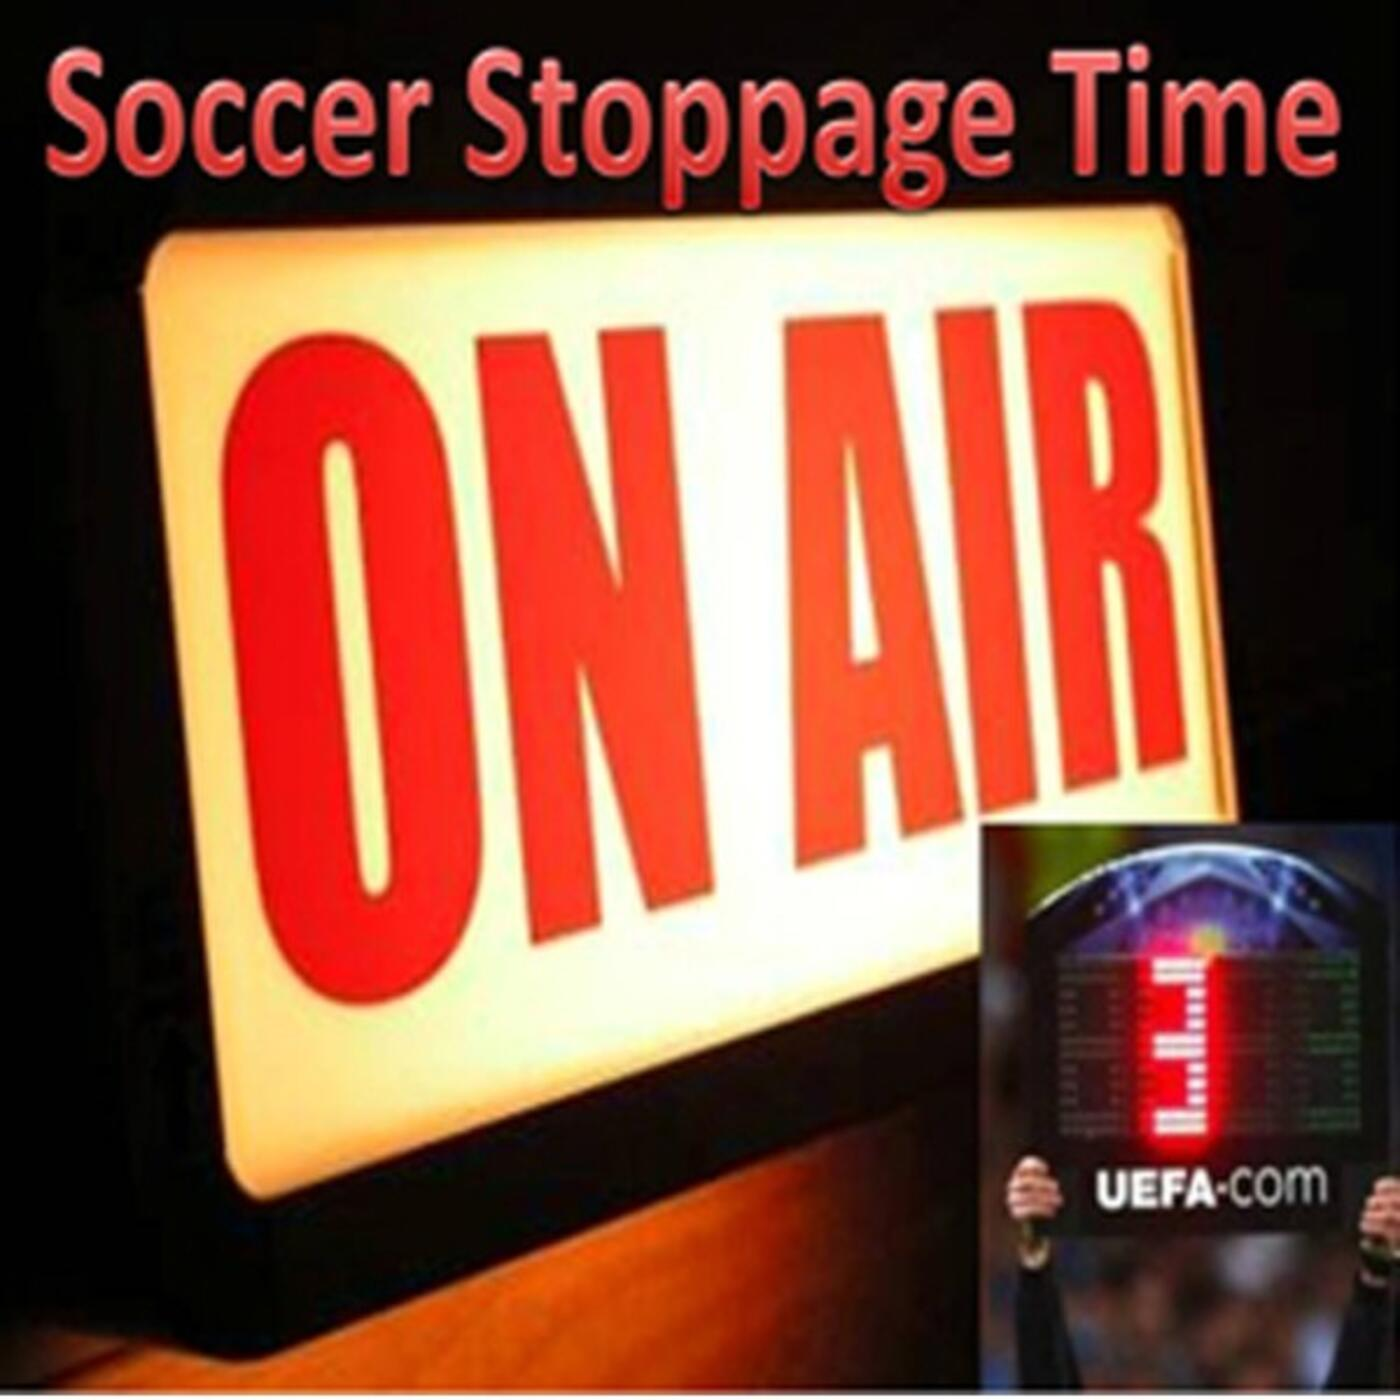 Soccer Stoppage Time by Soccer Stoppage Time on Apple Podcasts